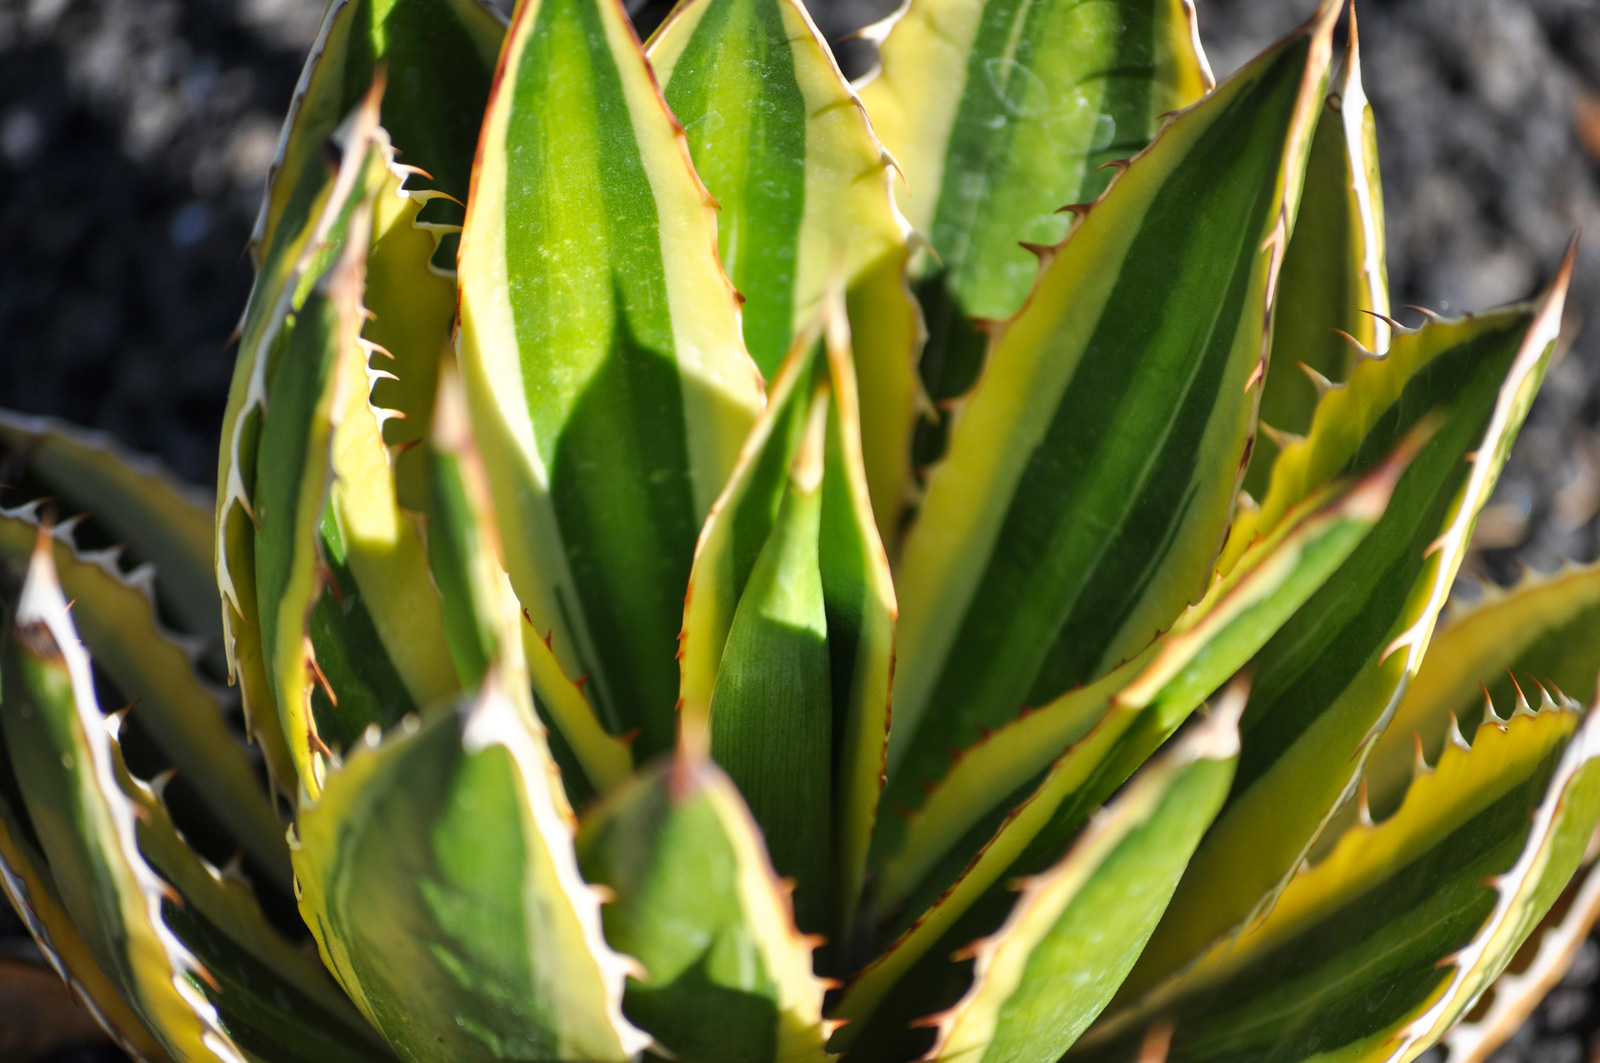 A close-up of the quadricolor leaves of the Thorn-crested Agave.